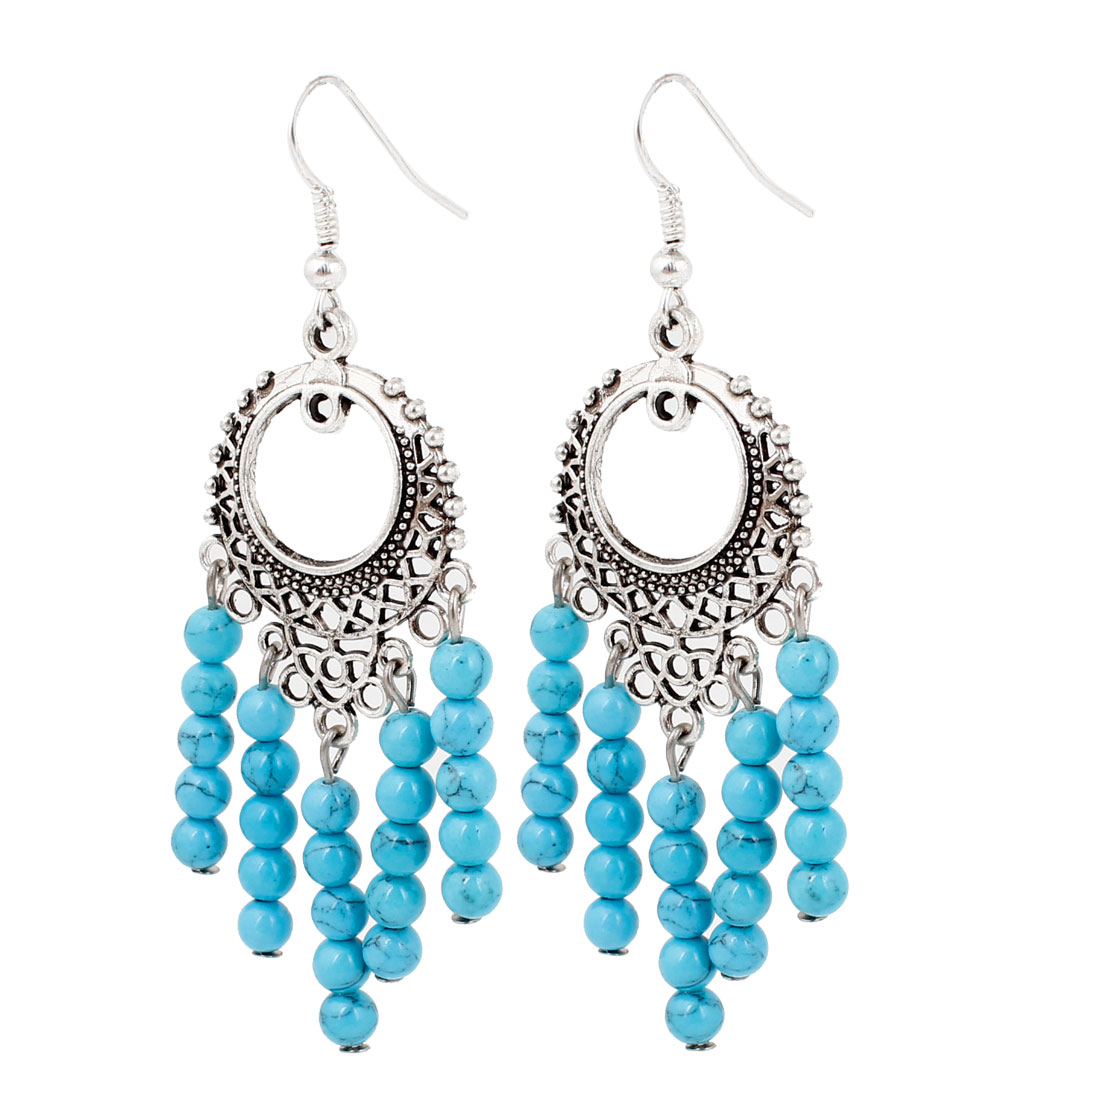 Lady Blue Plastic Round Beads Detail Fish Hook Earrings Silver Tone Pair